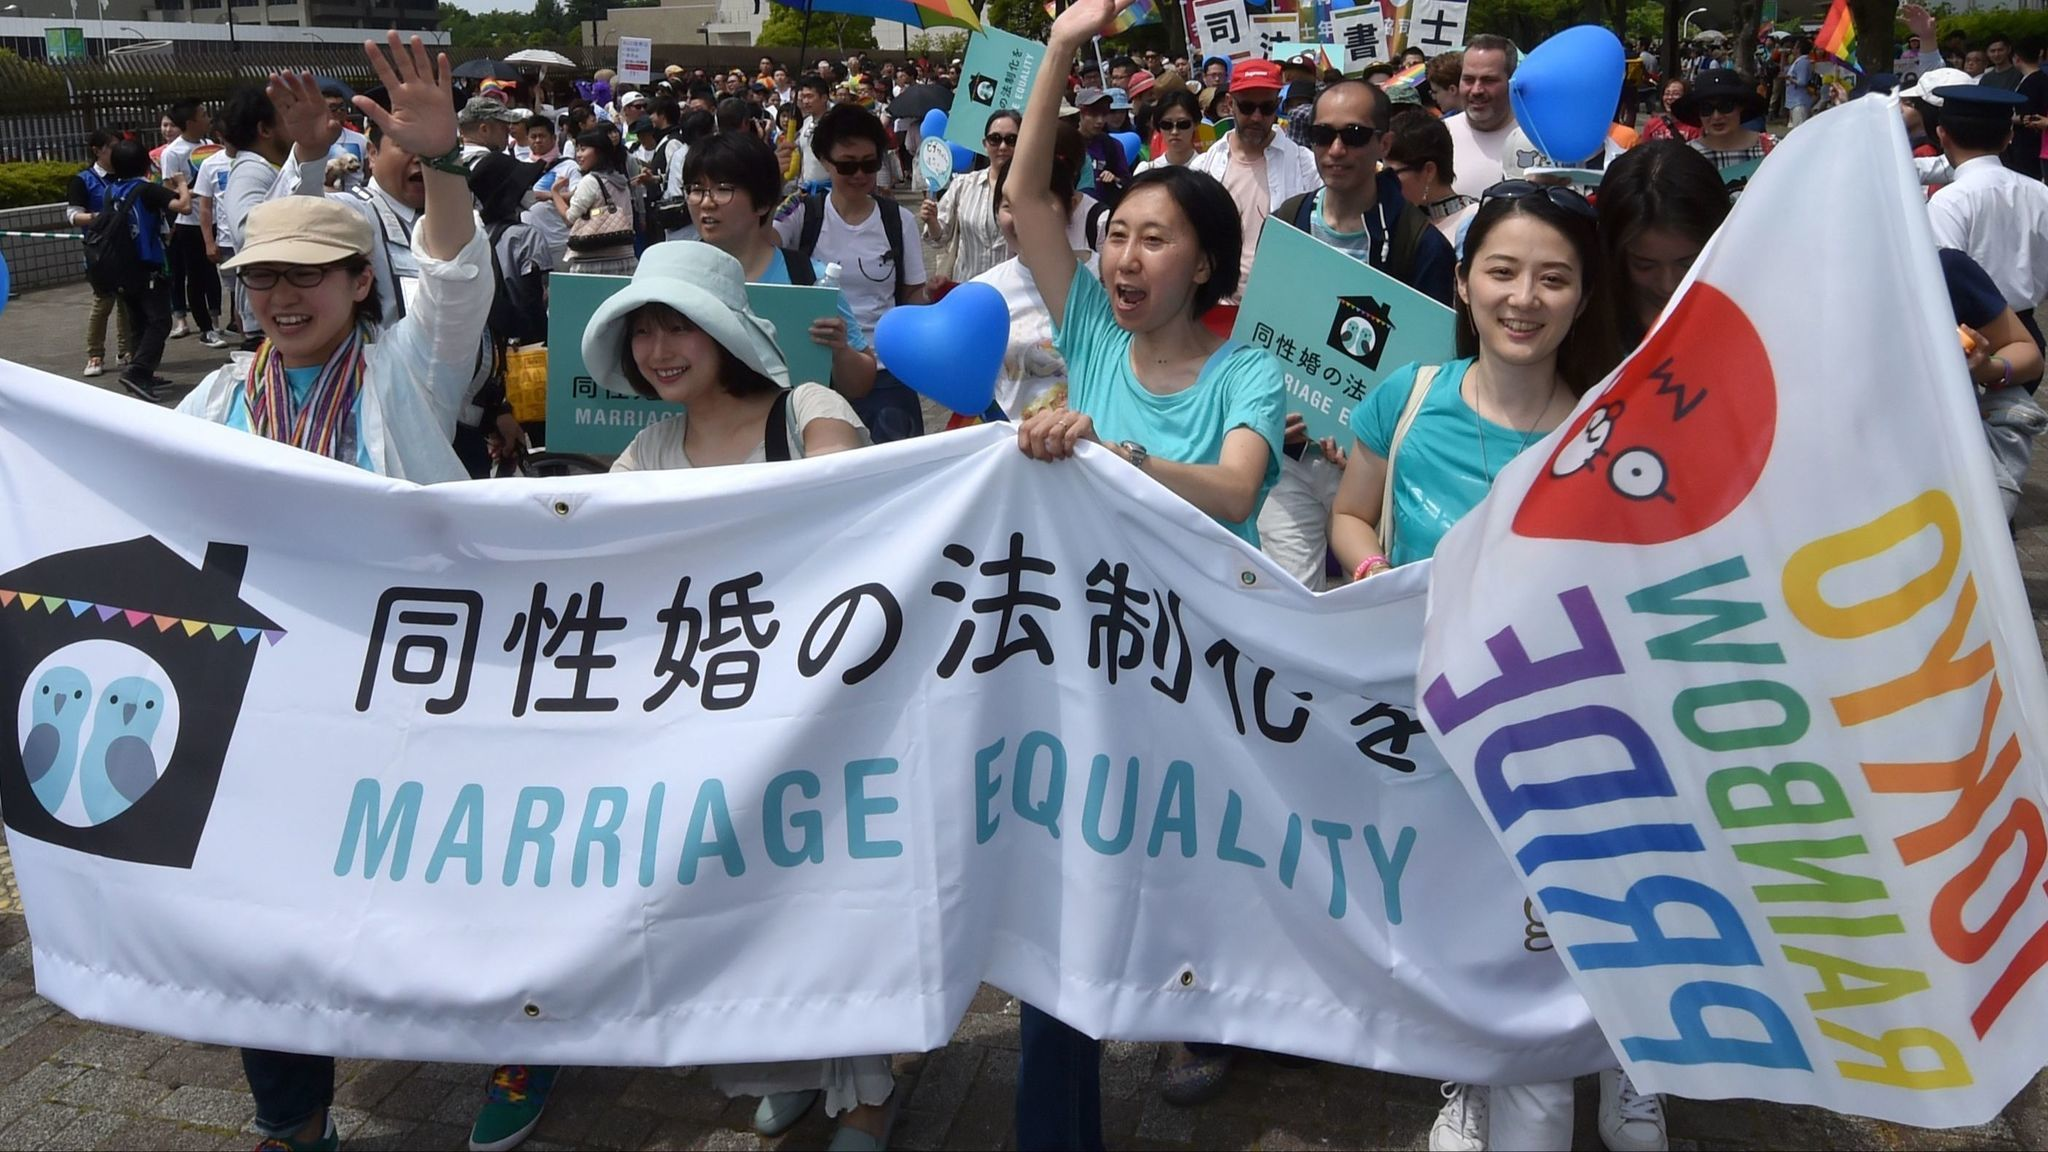 People march in the Rainbow Pride parade in Tokyo on May 7, 2017.